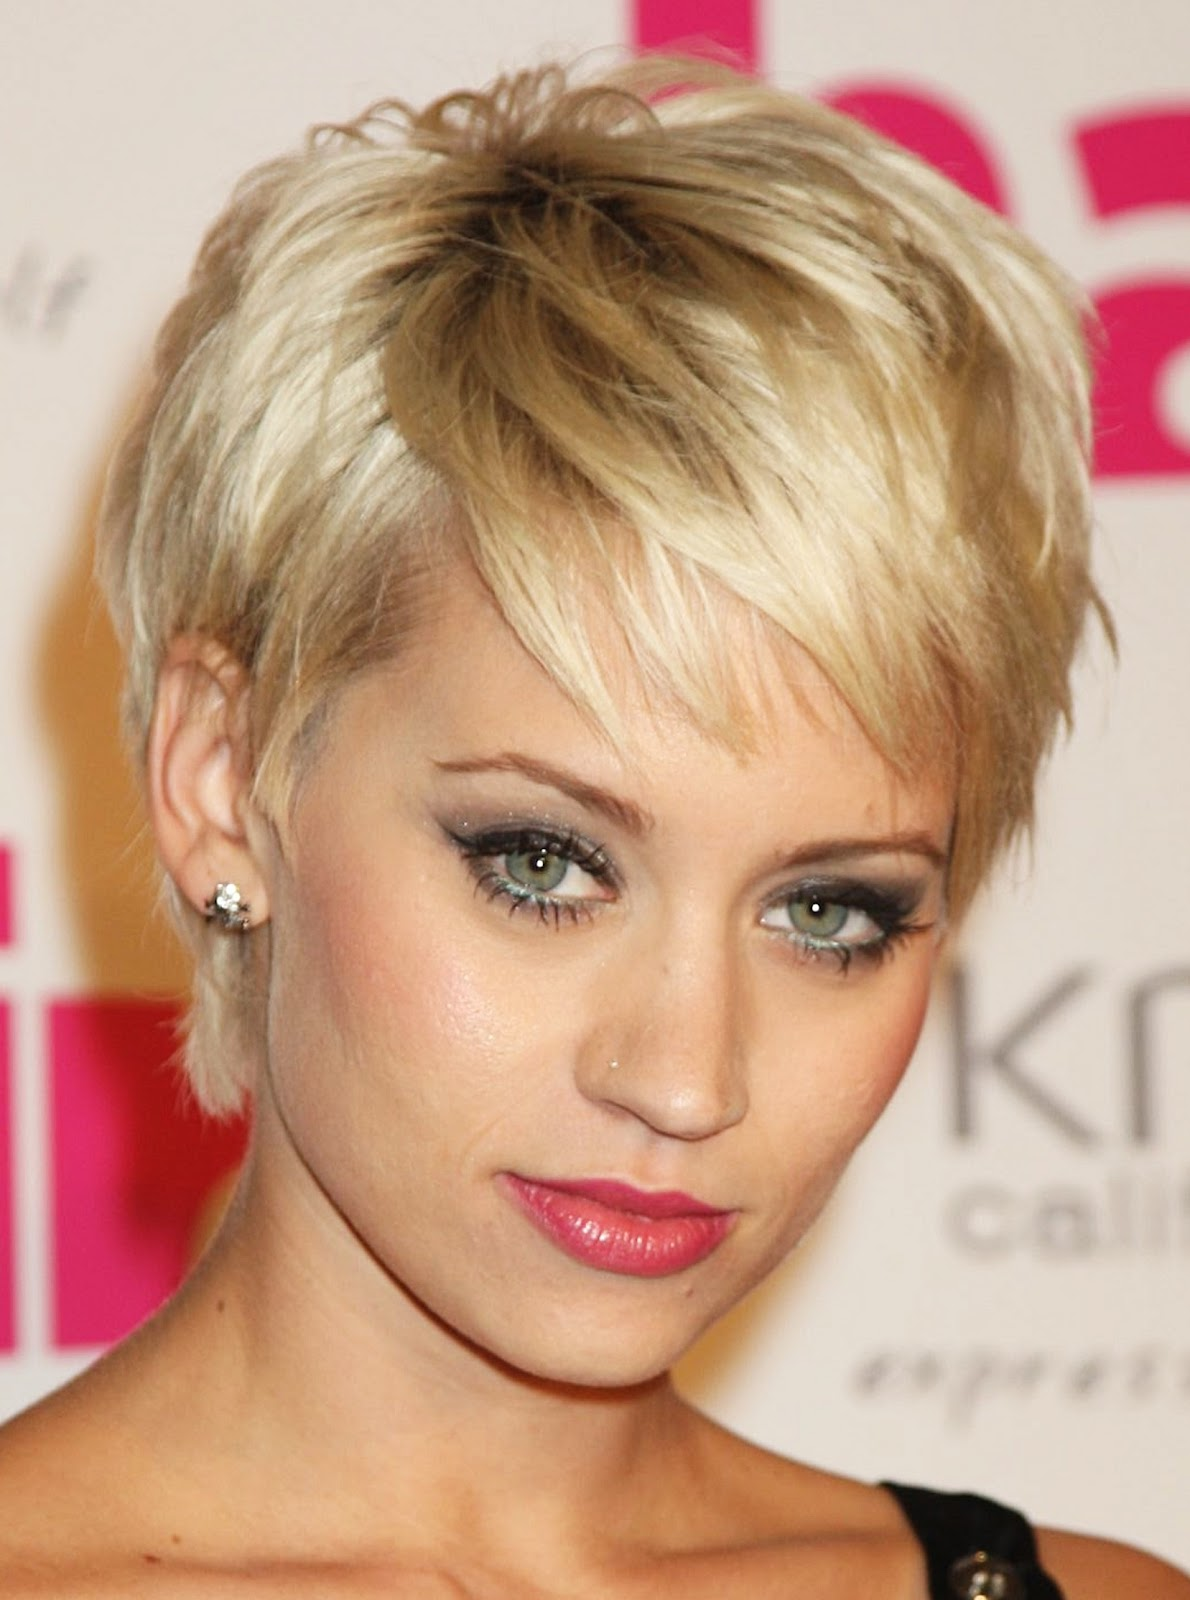 short hair styles 2012: hairstyles for young women